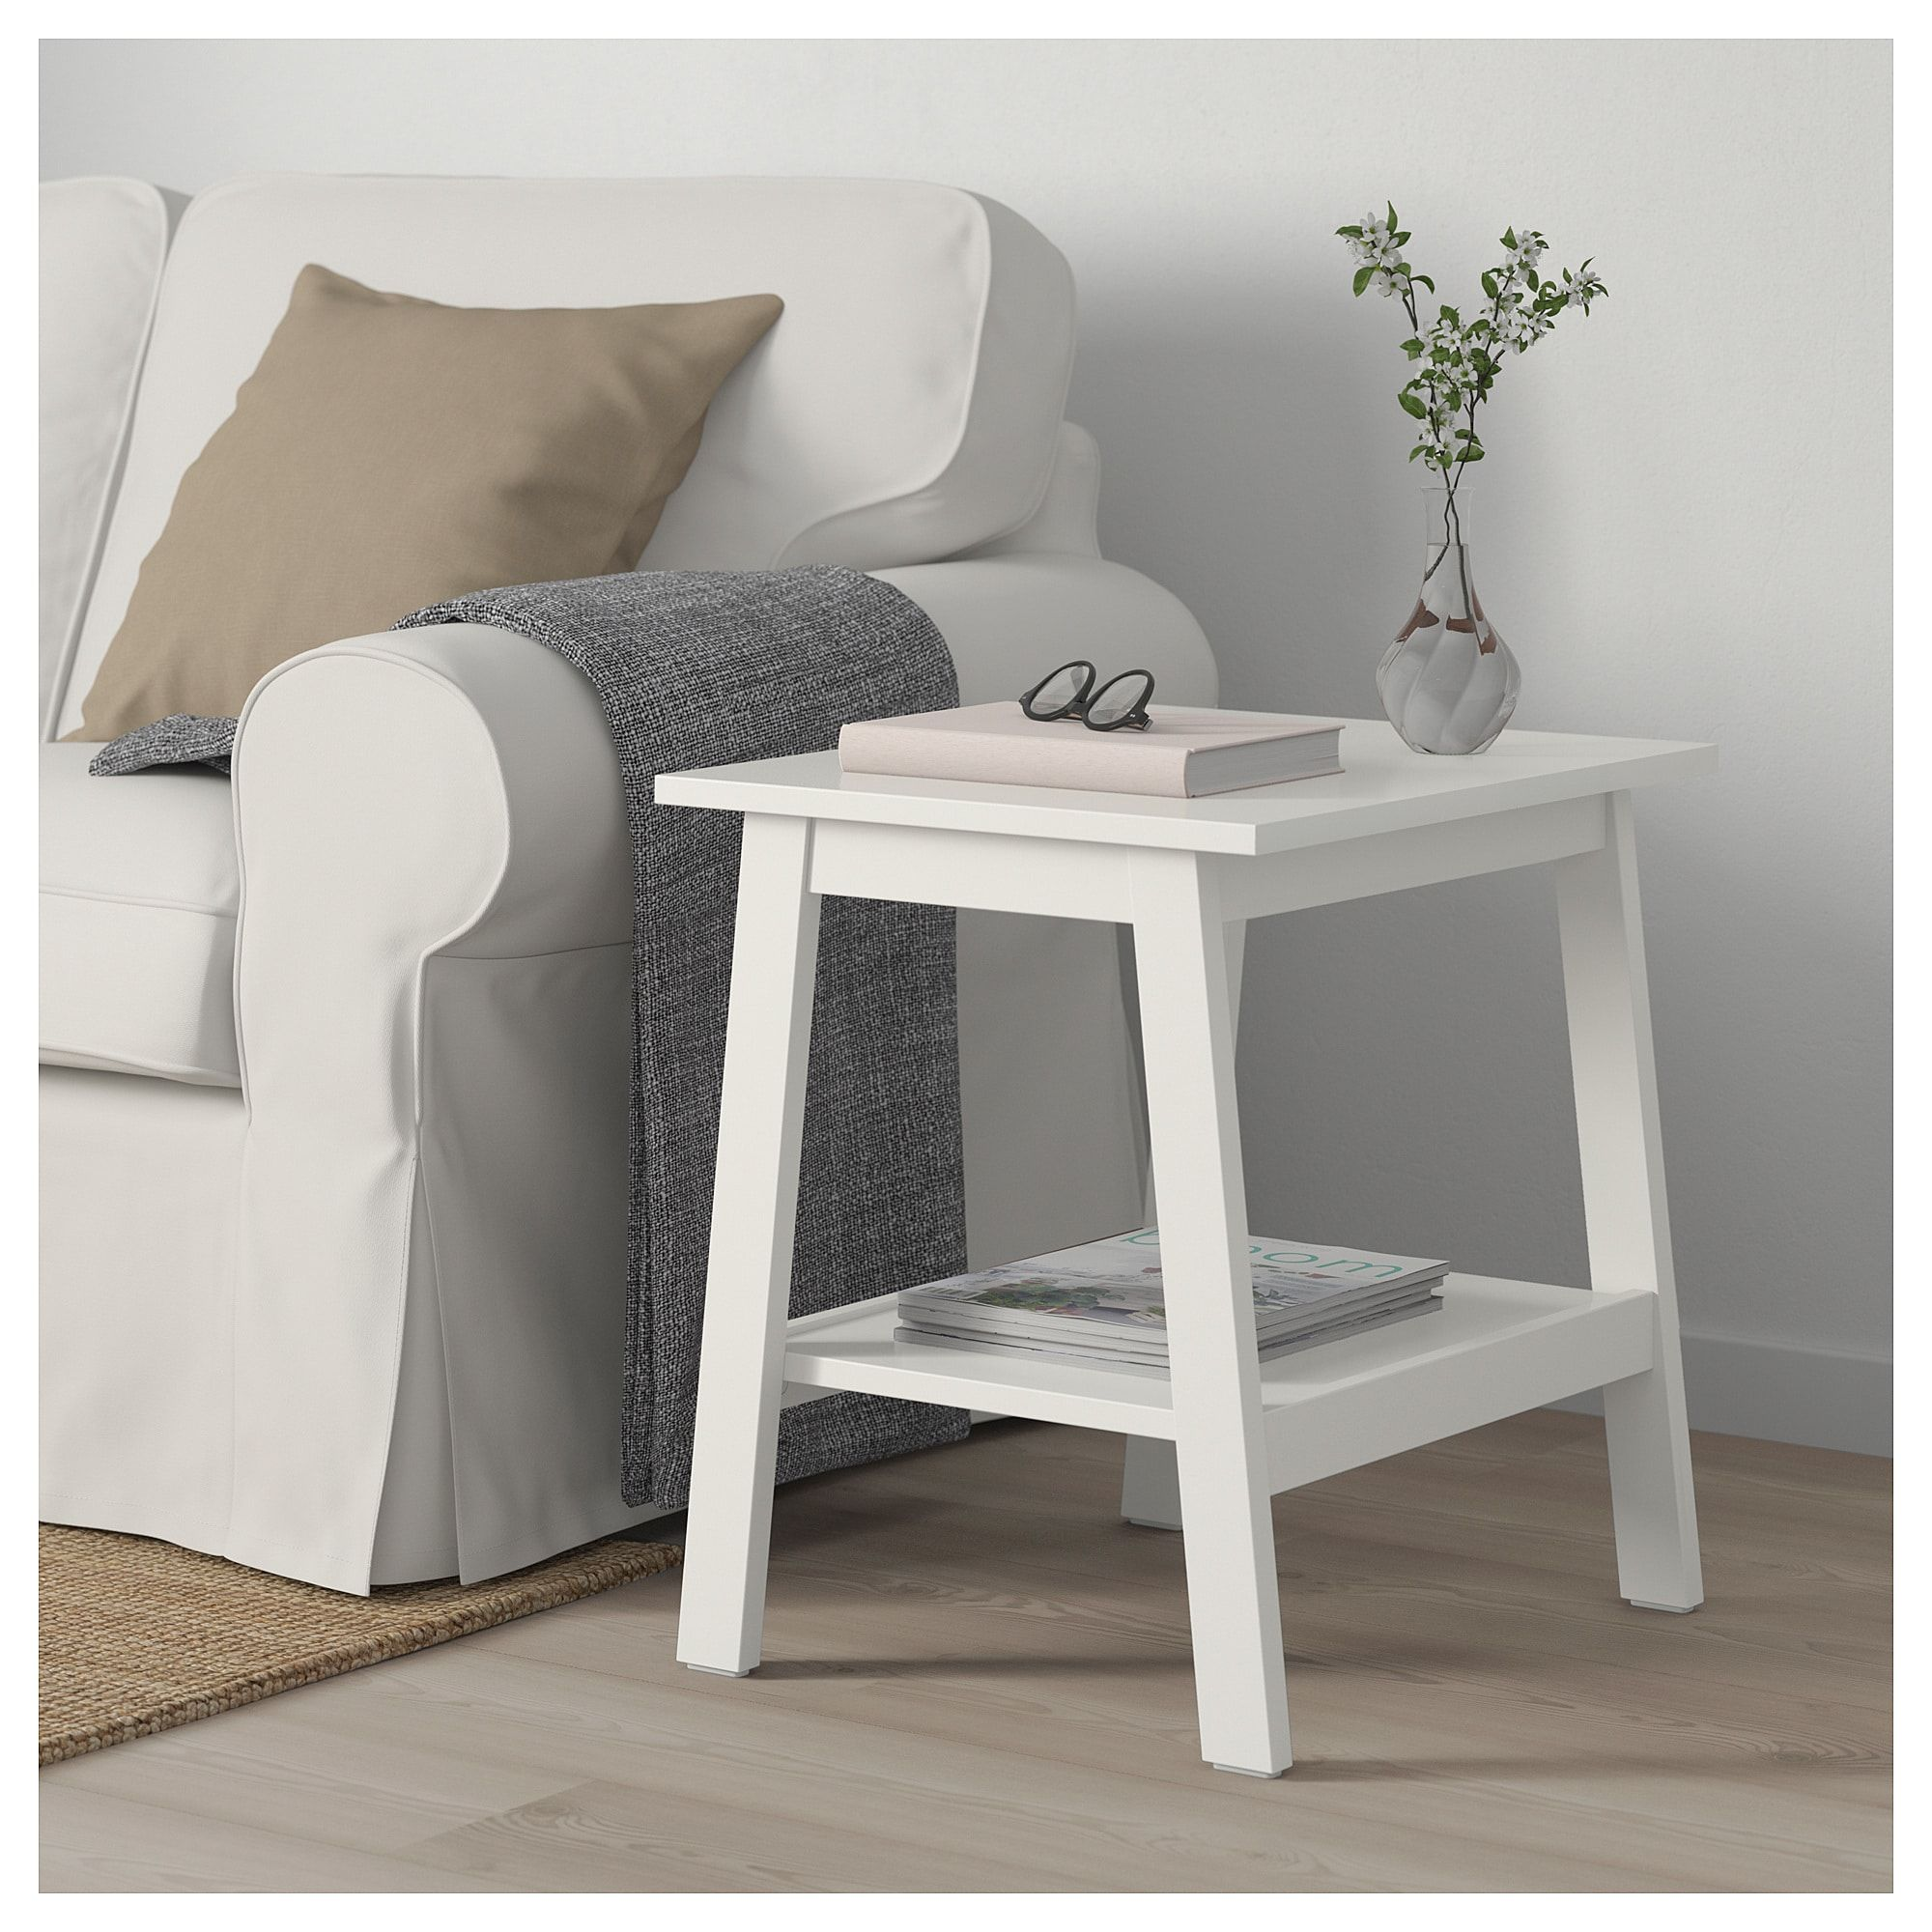 Table Console Ikea Lunnarp Side Table White In 2019 Texas Home White Side Tables